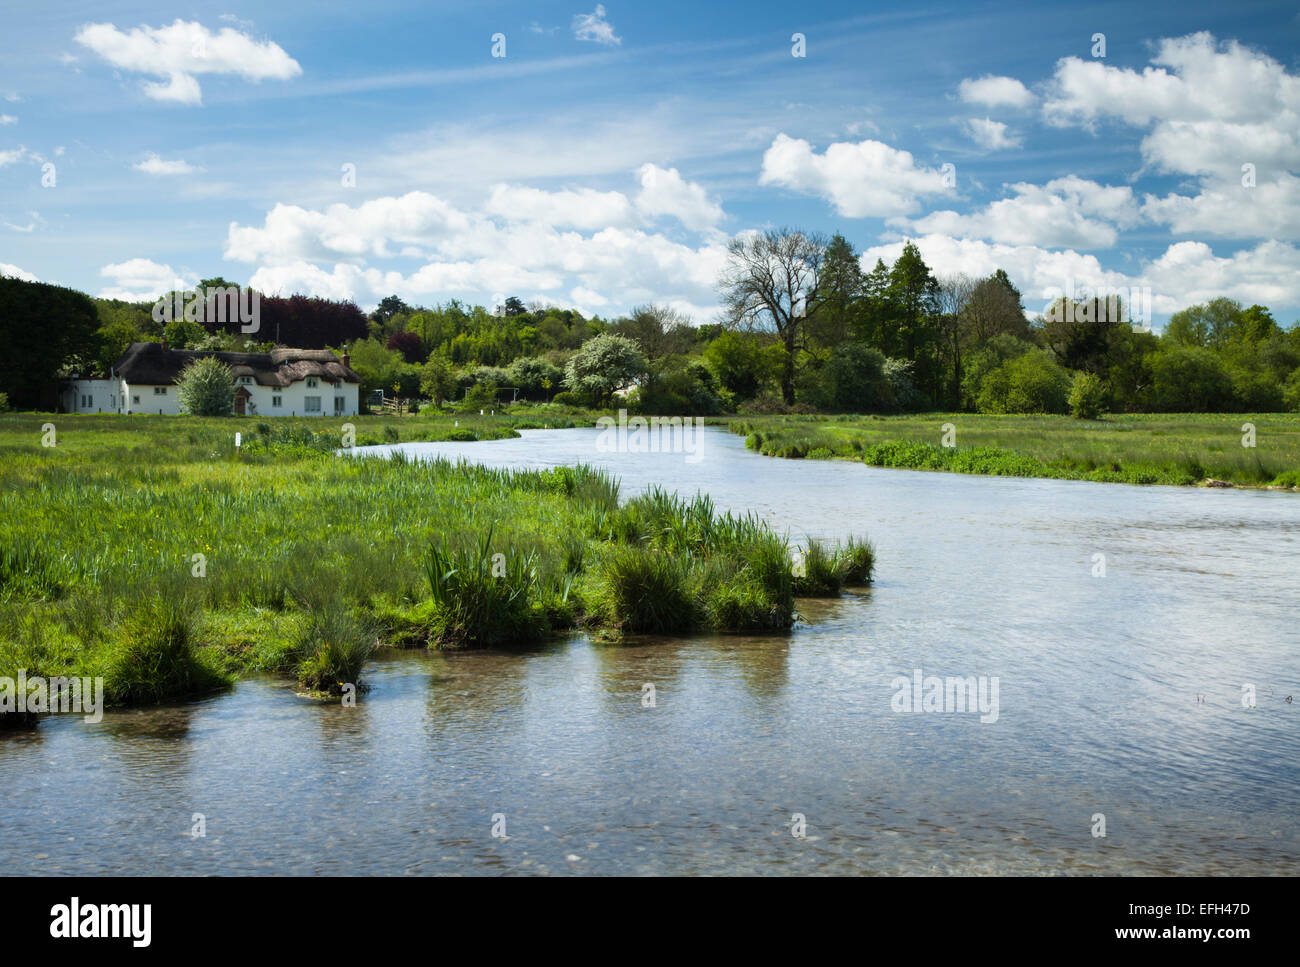 The River Test meandering through the watermeadows of Chilbolton Cow Common, Chilbolton in the Test Valley, Hampshire, - Stock Image